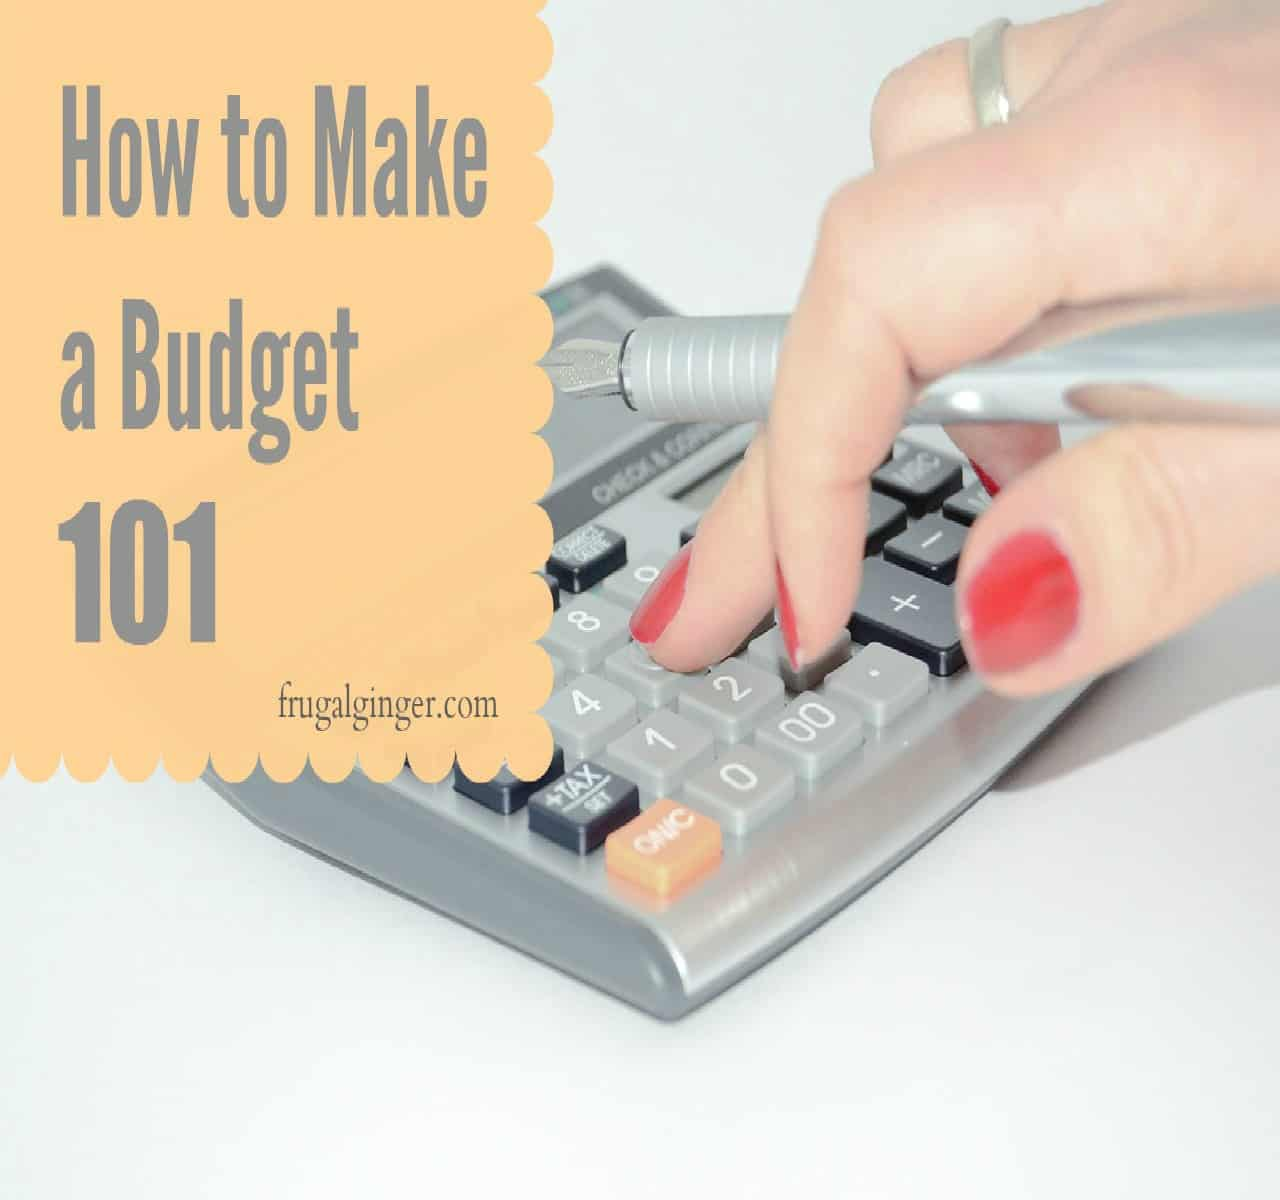 How to Make a Budget 101